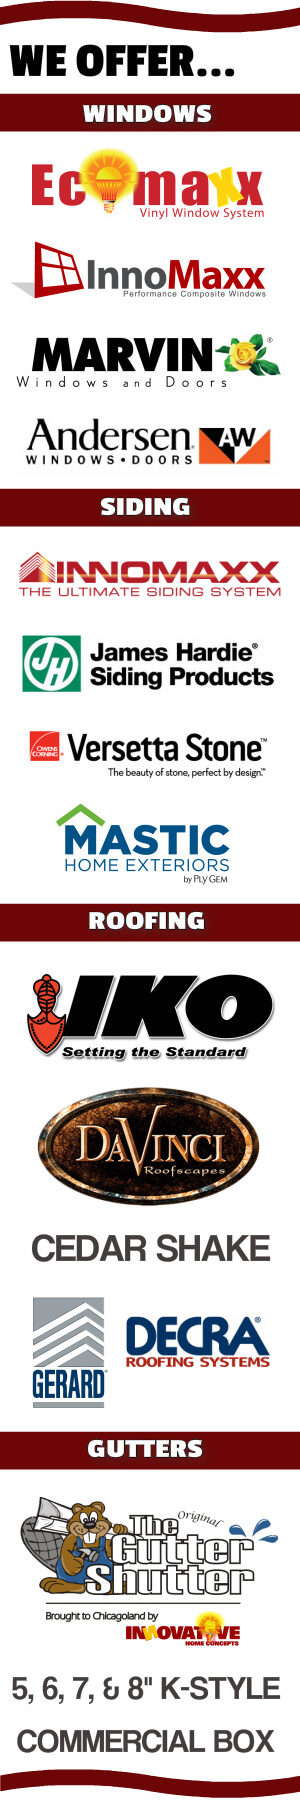 LIST OF HOME IMPROVEMENT PRODUCTS OFFERED BY INNOVATIVE HOME CONCEPTS, INC